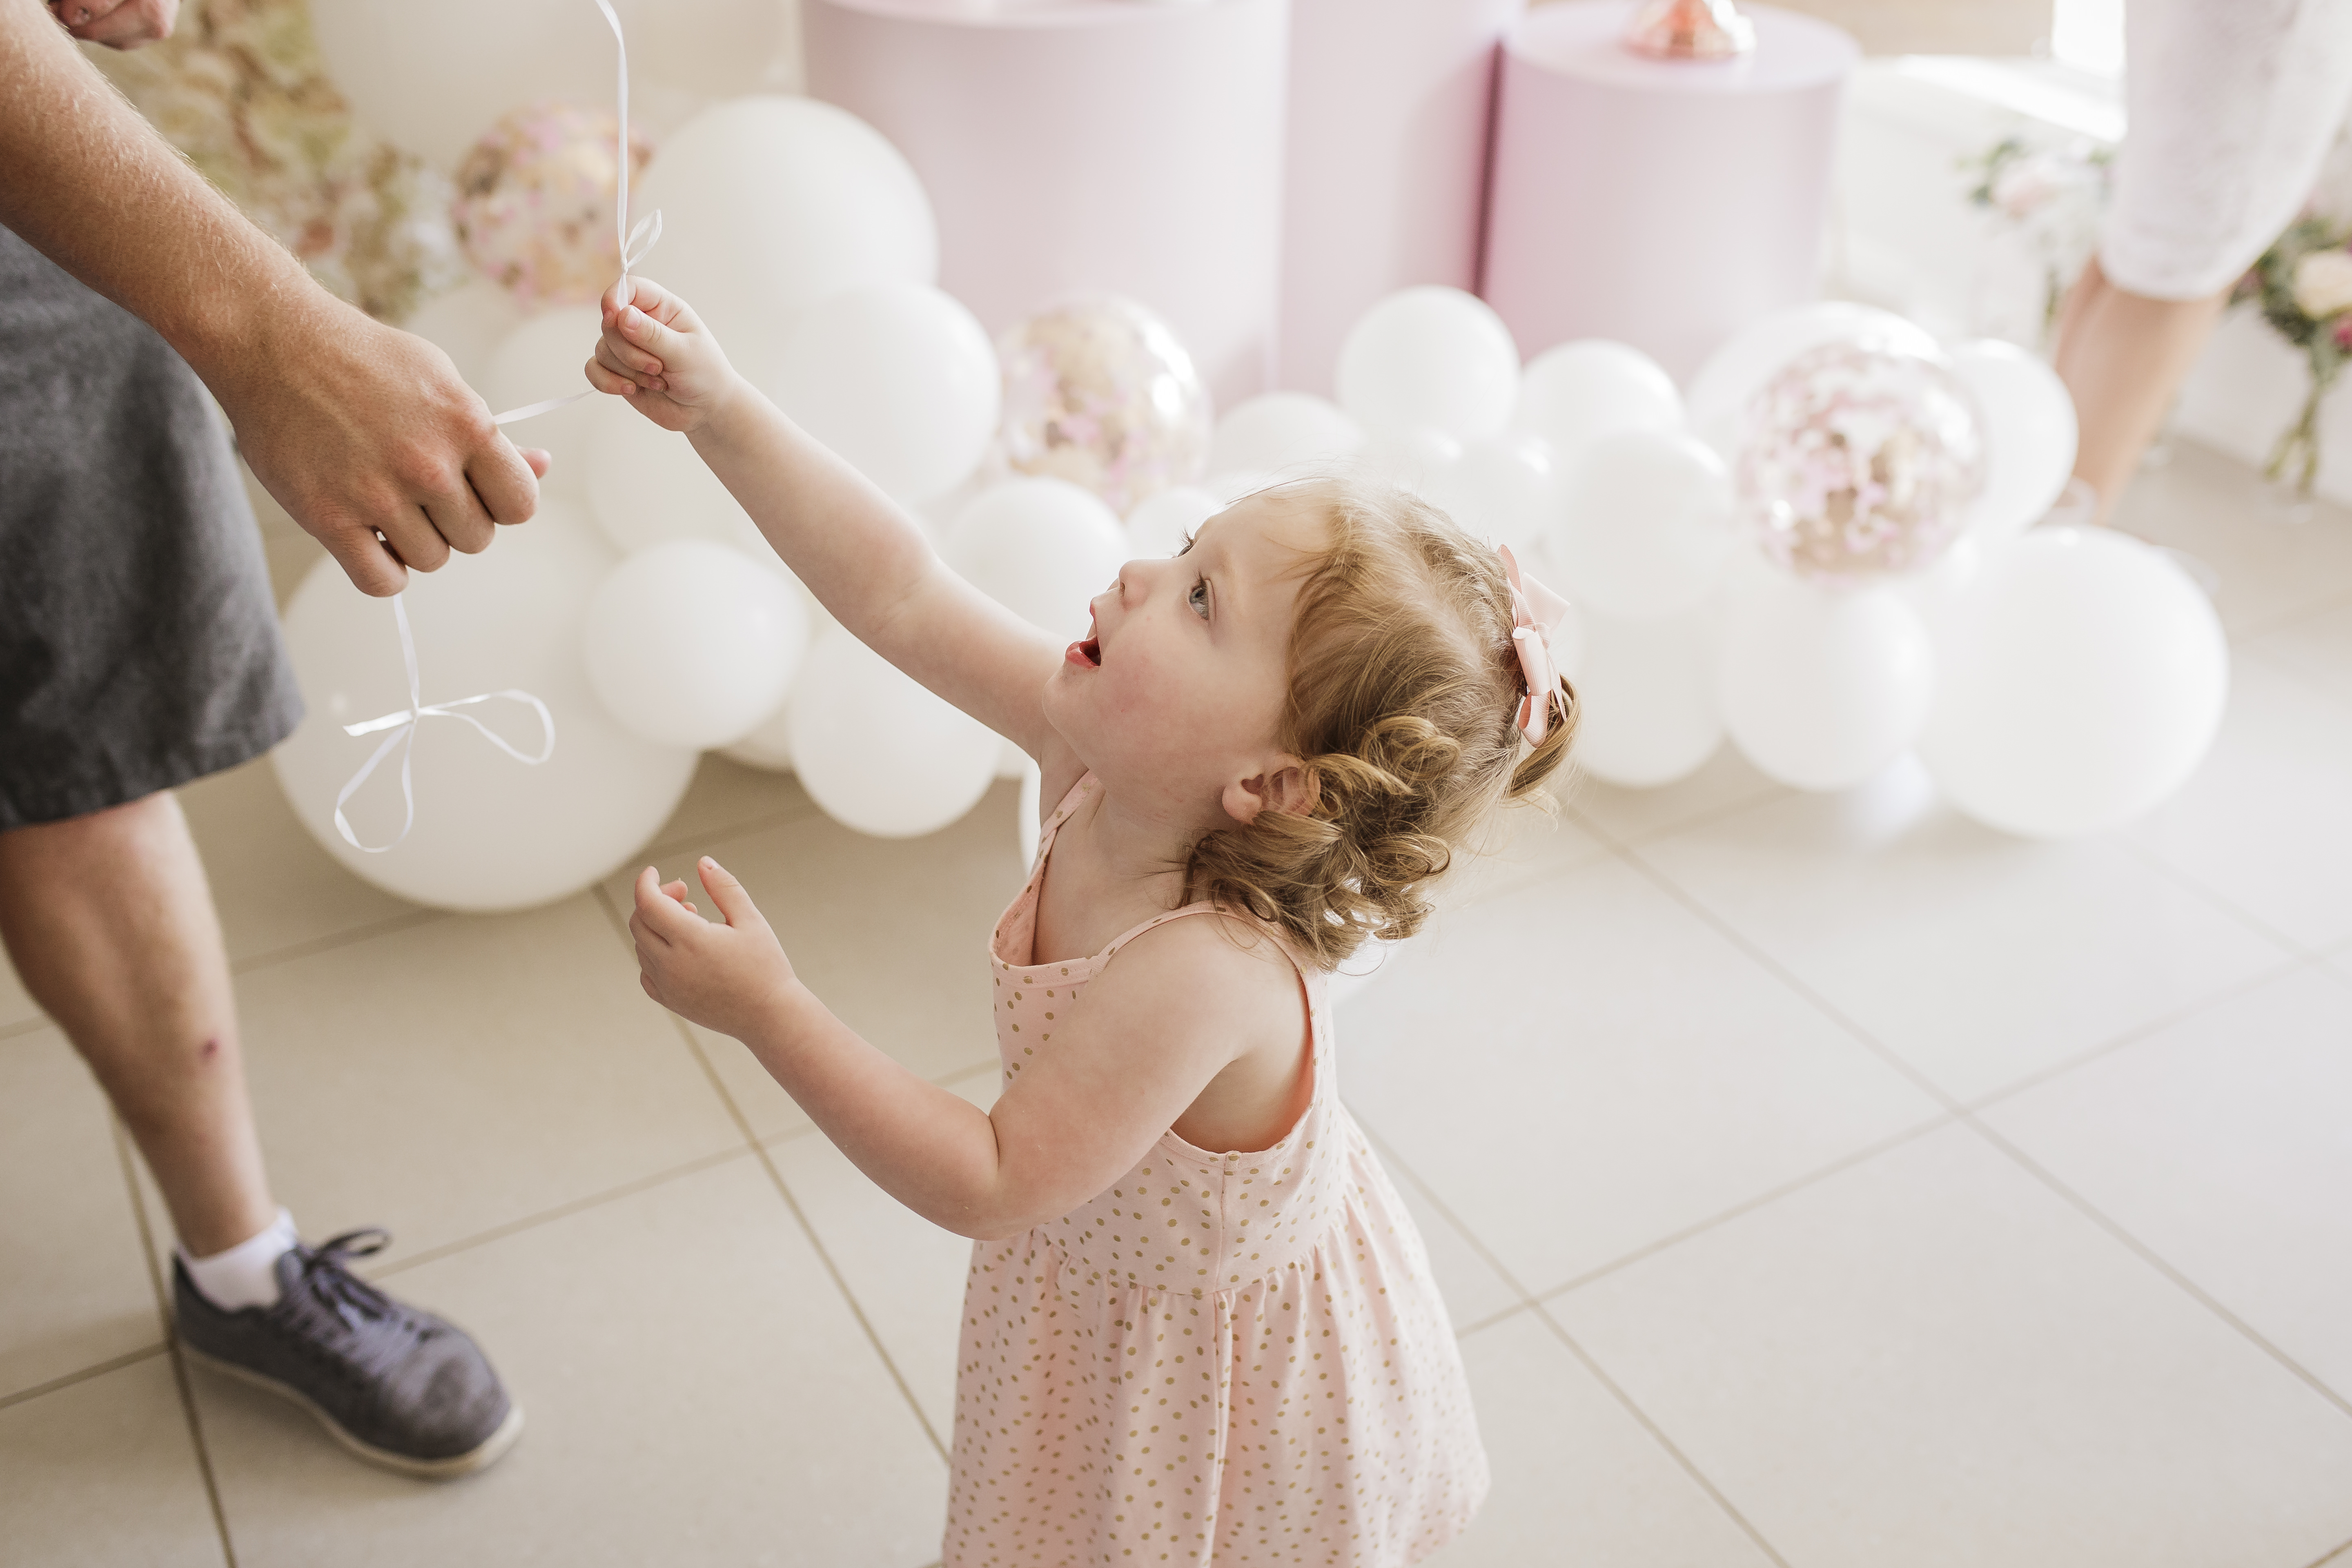 It Was Such A Lovely Day And Turned Out Just Amazingly! I Hope This Has  Helped Given You Some Ideas If You Are Planning Your Own Baby Shower!